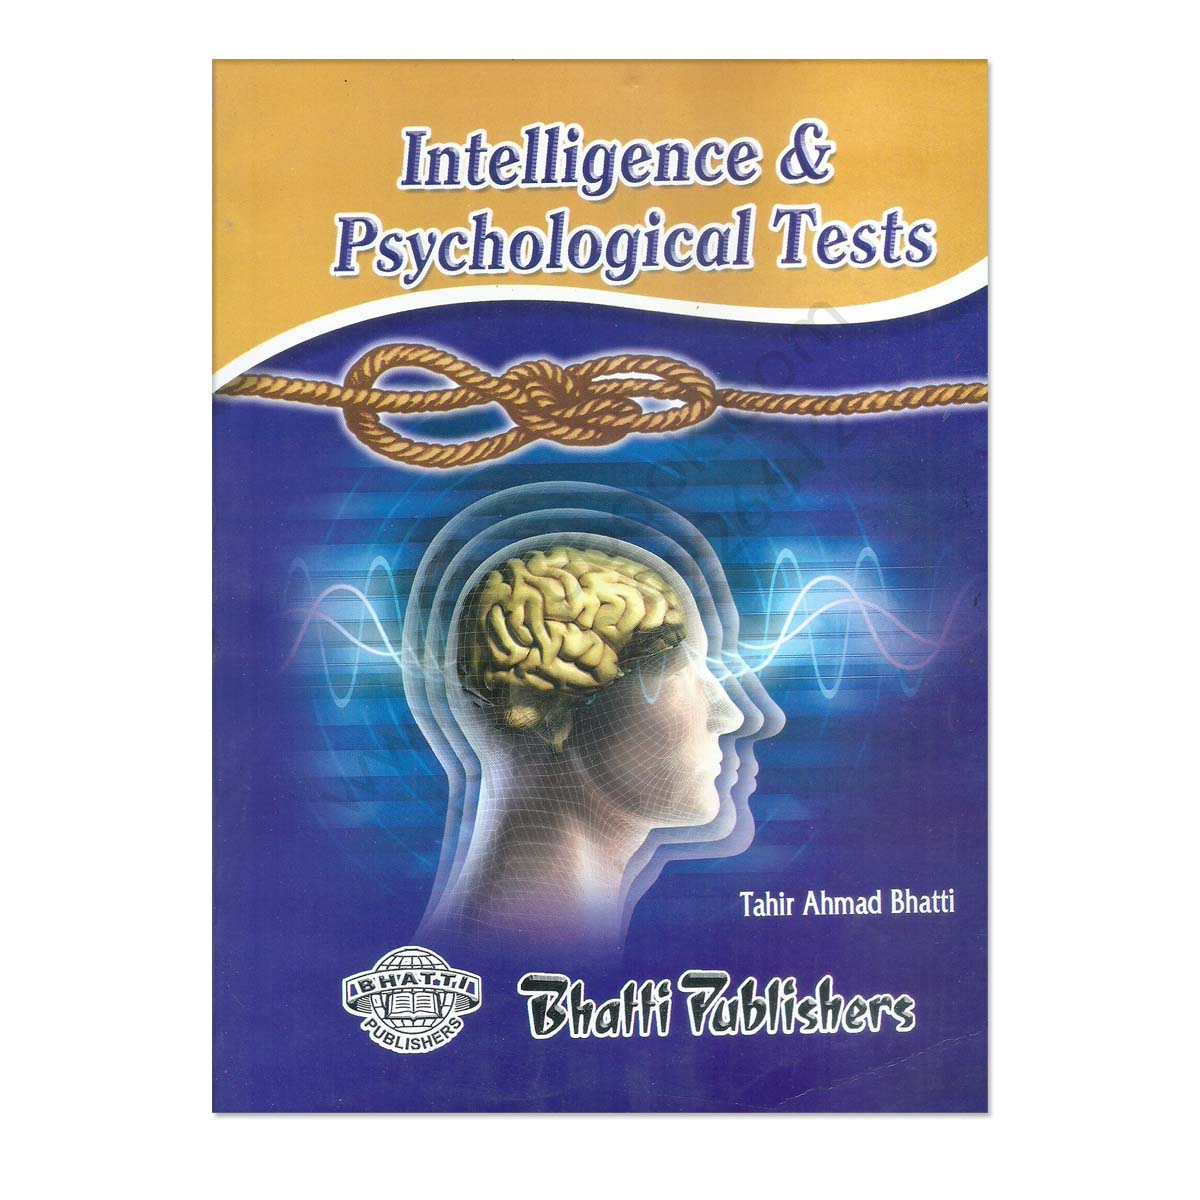 intelligence and psychological tests 2016 by tahir ahmed bhatti